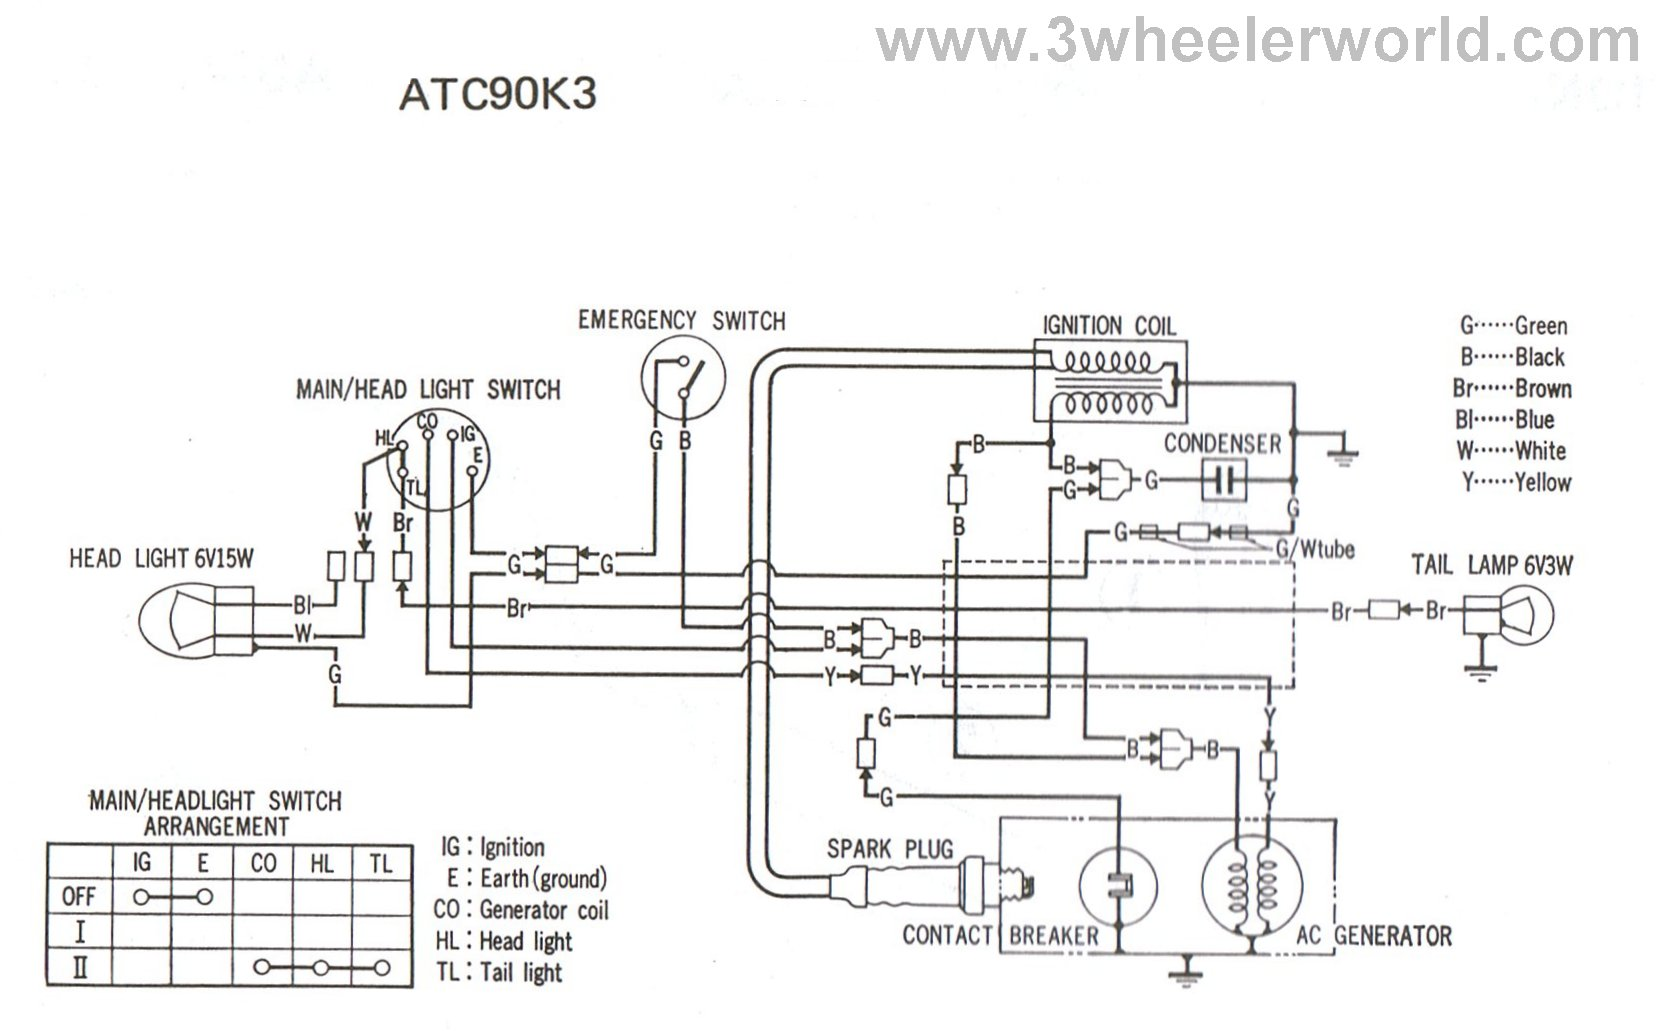 ATC90K3HM wiring diagrams \u2022 j squared co micro 850 wiring diagram at webbmarketing.co